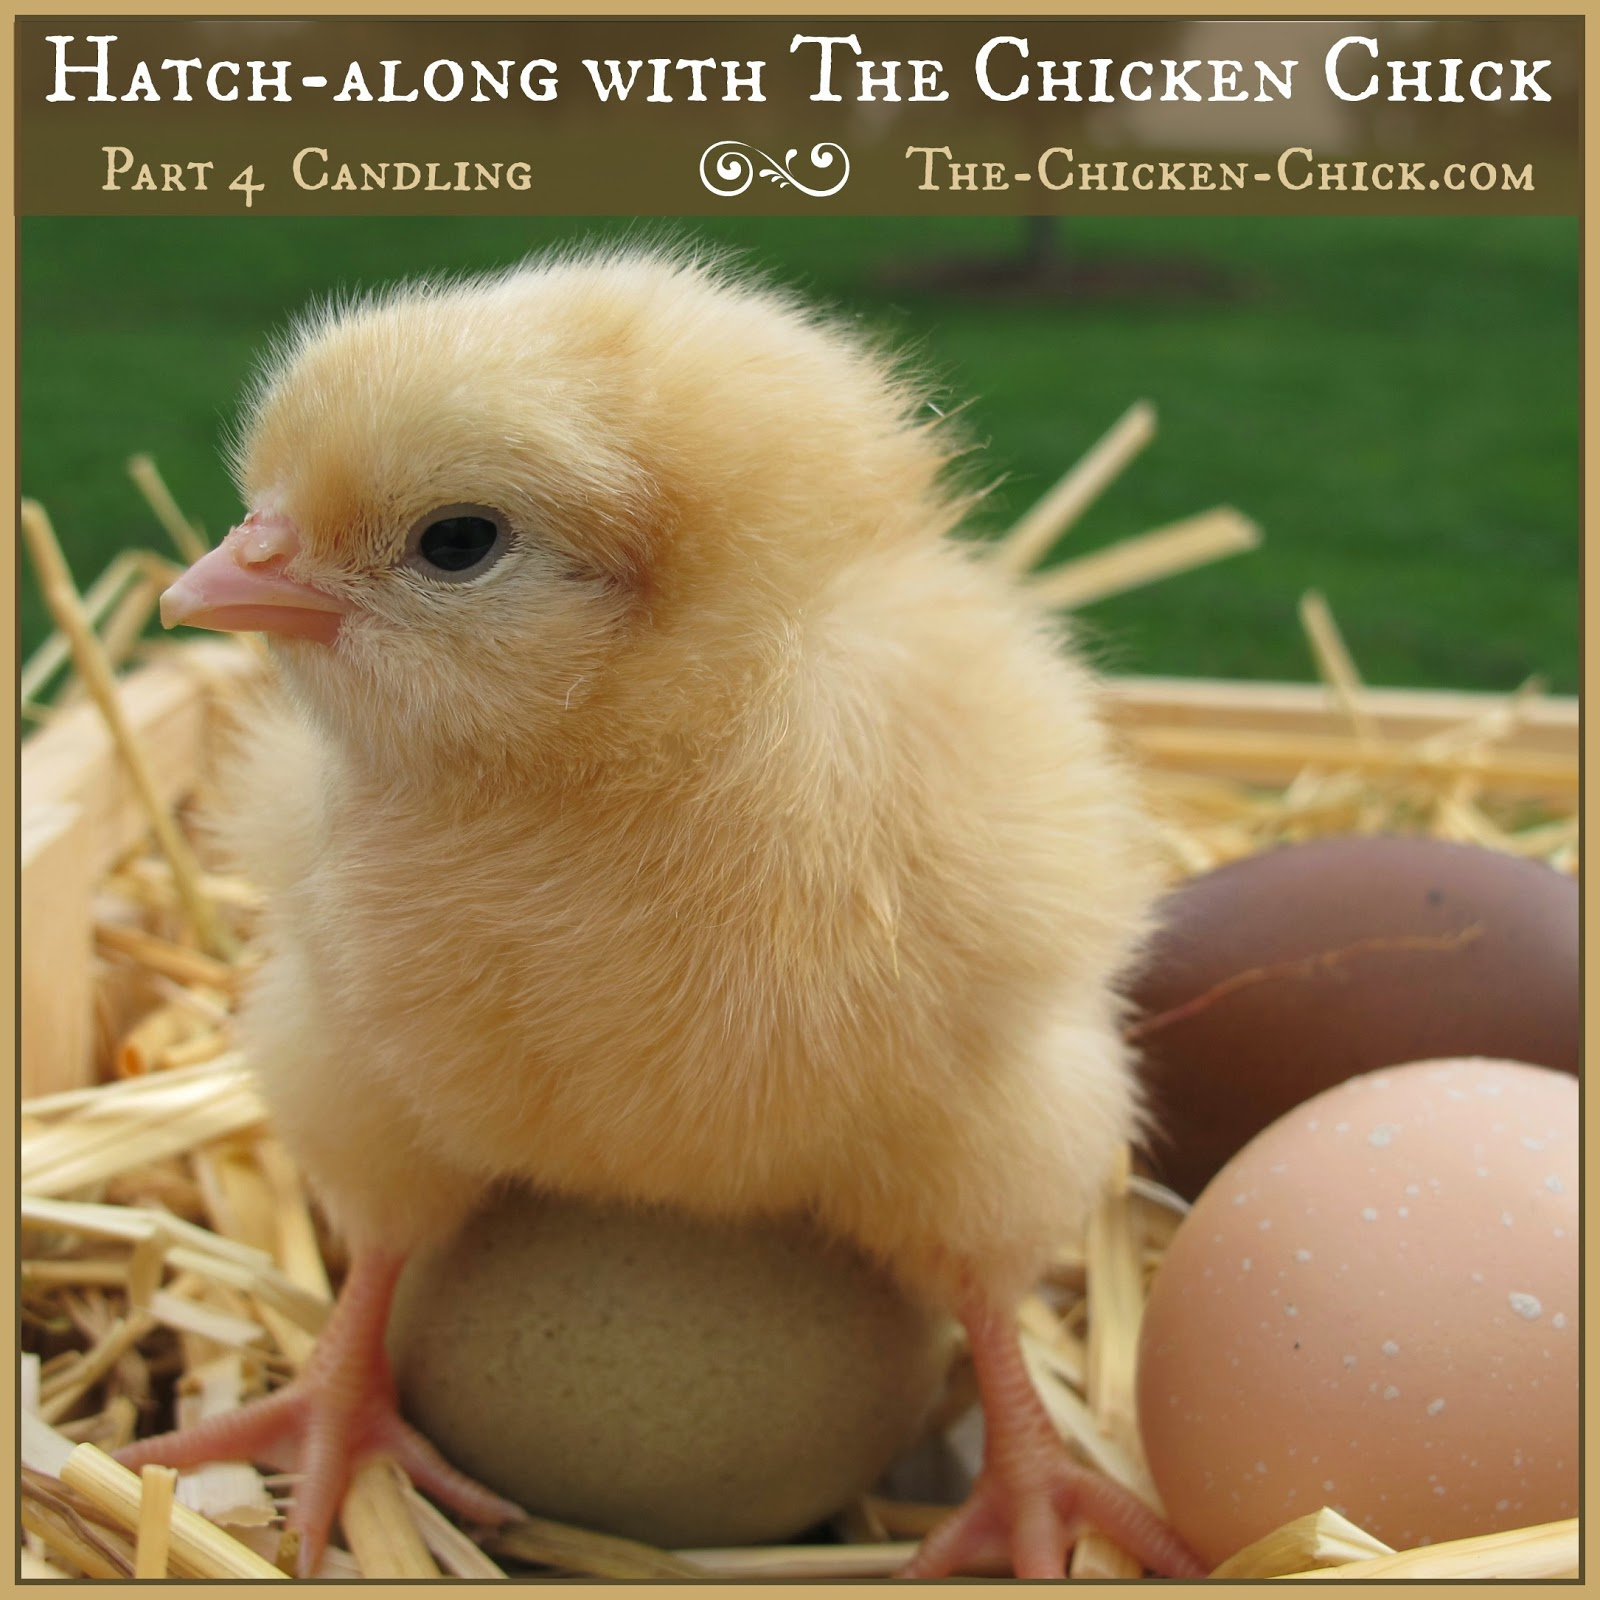 The Chicken Chick®: Hatch-along with The Chicken Chick: Part 4: Egg Candling